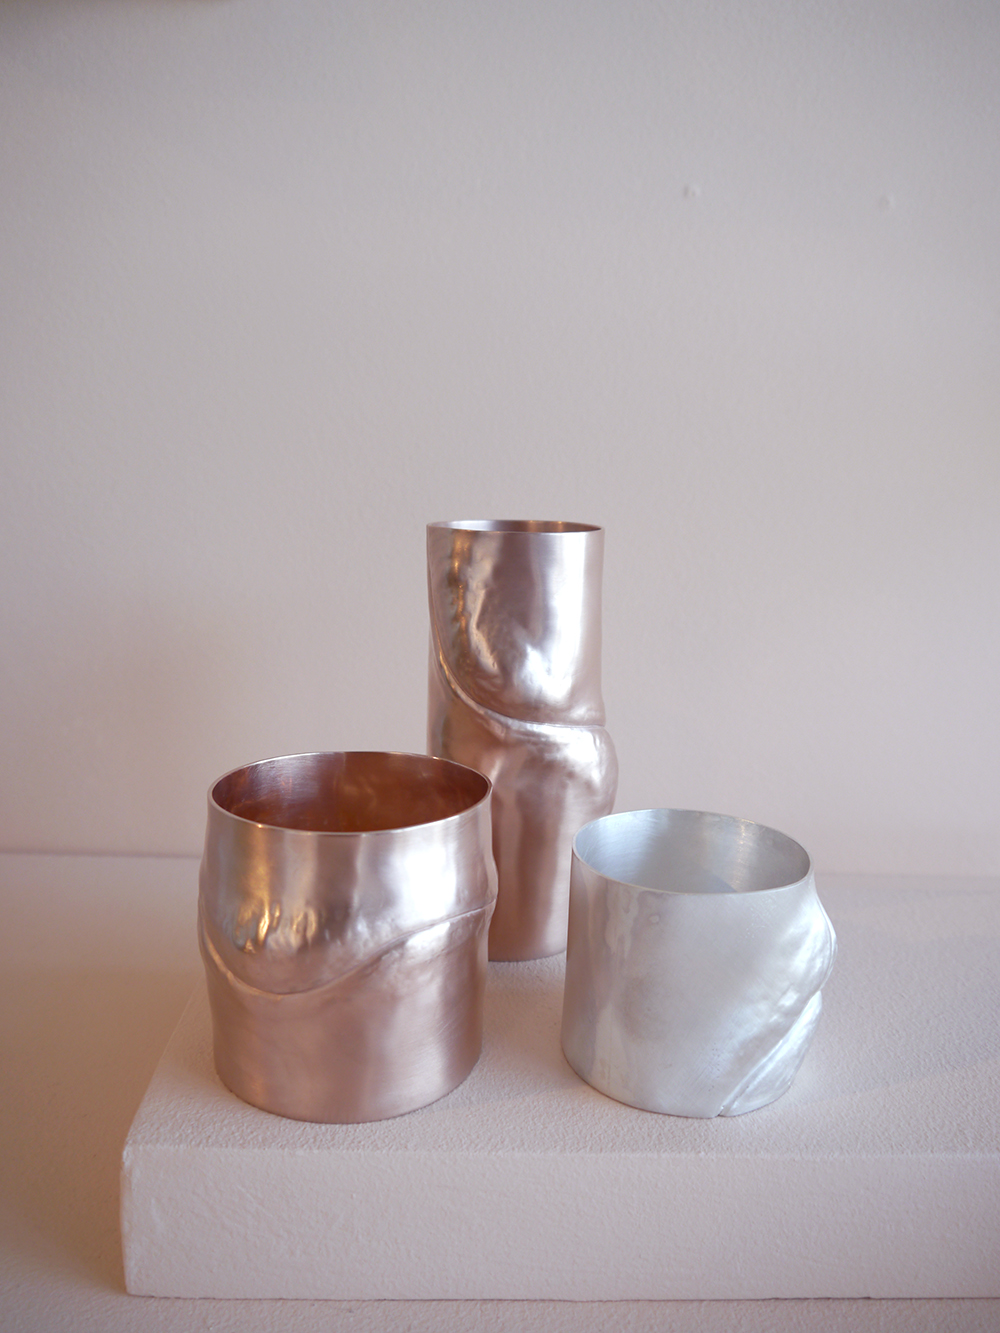 Silversmithing by Jan Warnock at Edinburgh College of Art Degree Show